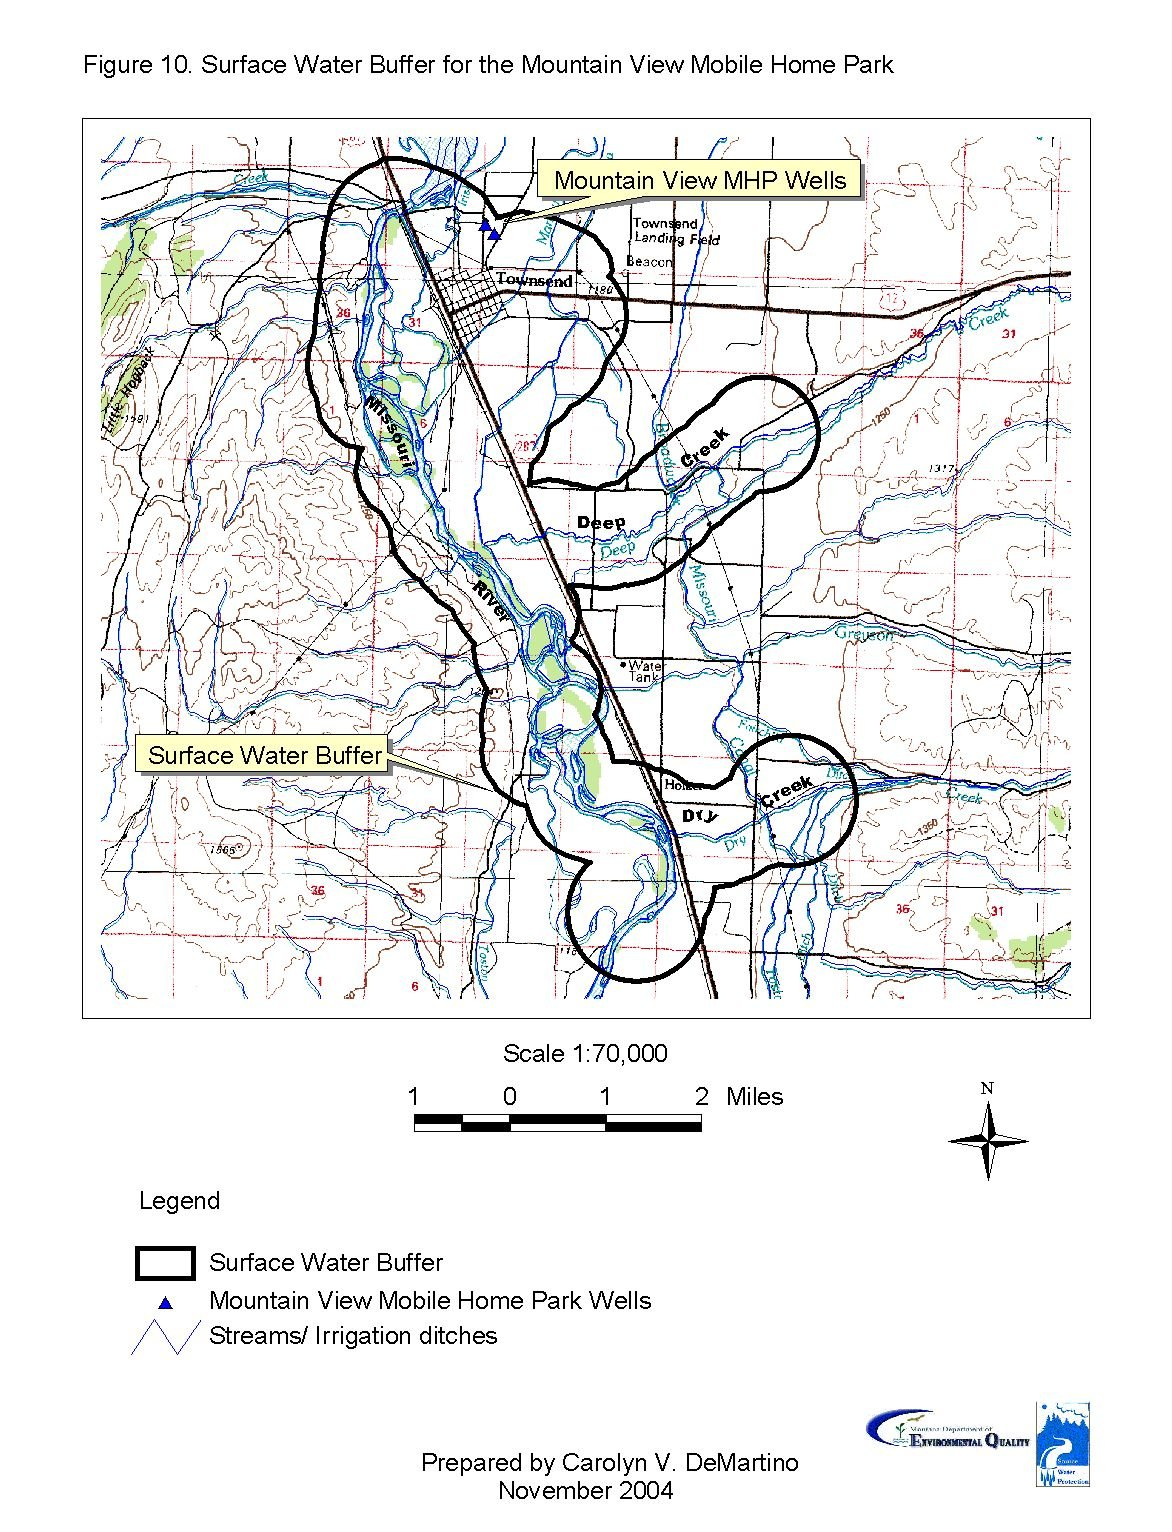 Mountain View Mobile Home Park Source Water Delineation